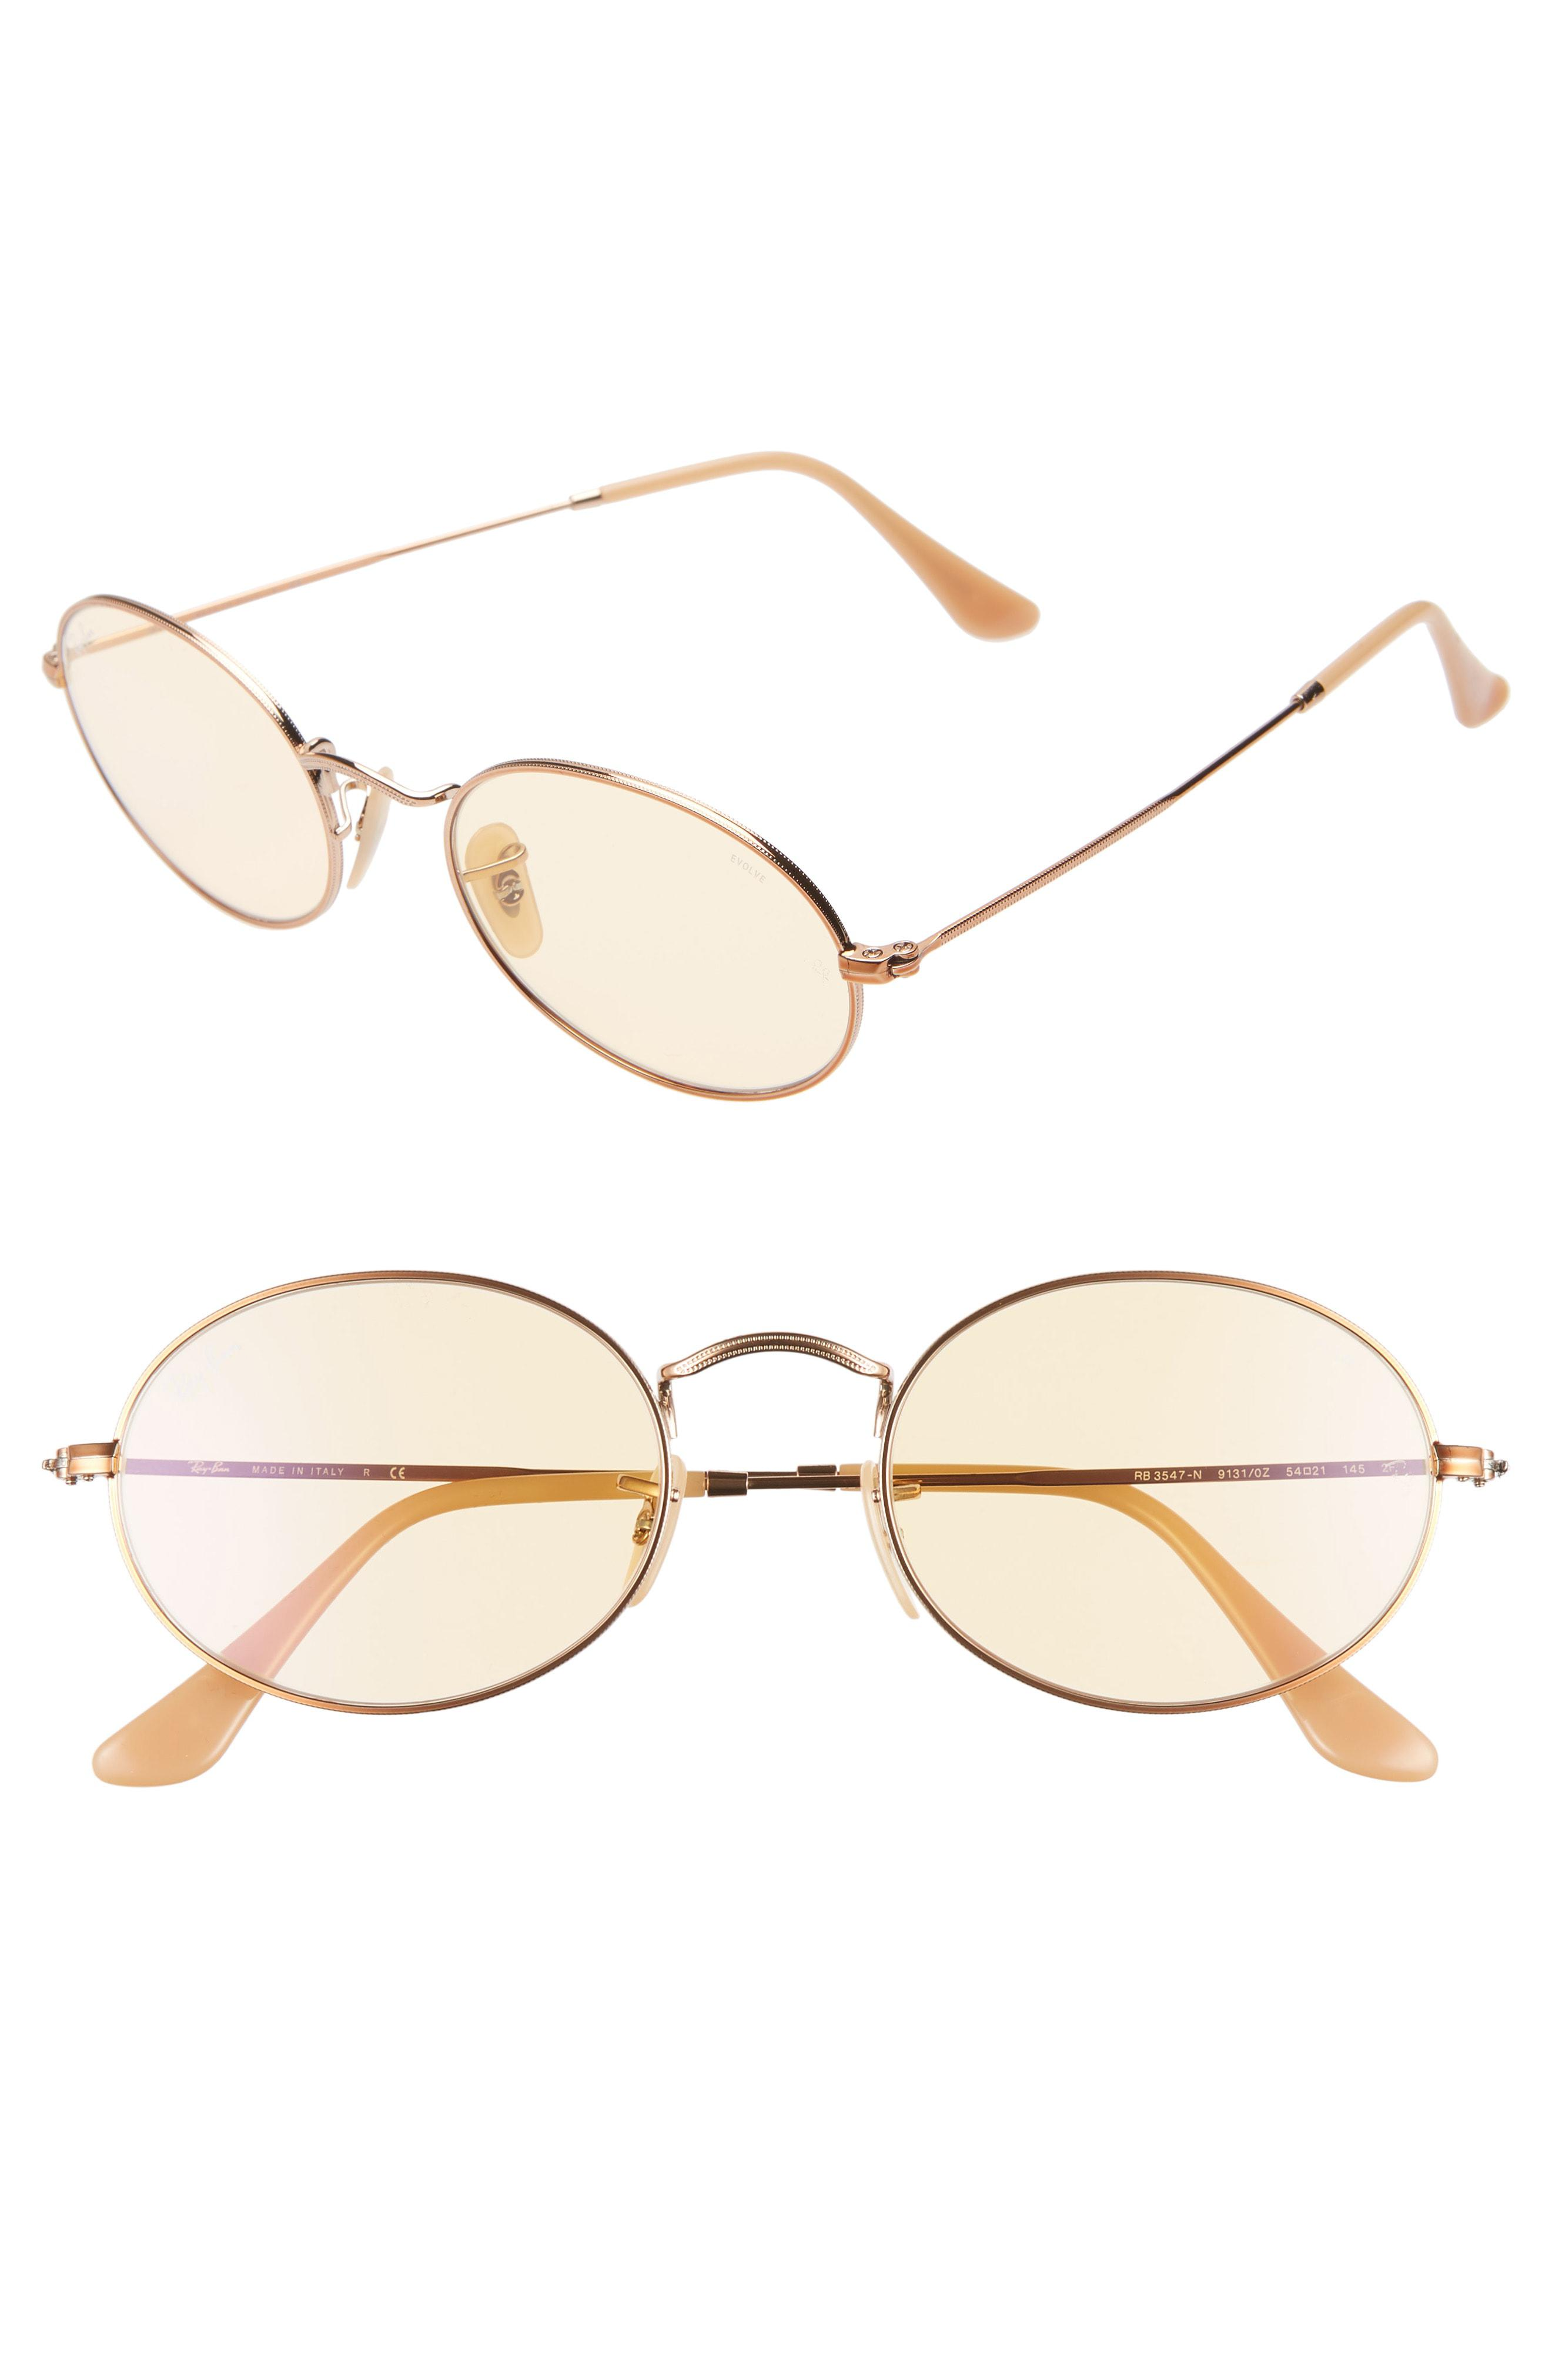 f775d3ab42 Lyst - Ray-Ban Evolve 54mm Polarized Oval Sunglasses in Metallic ...